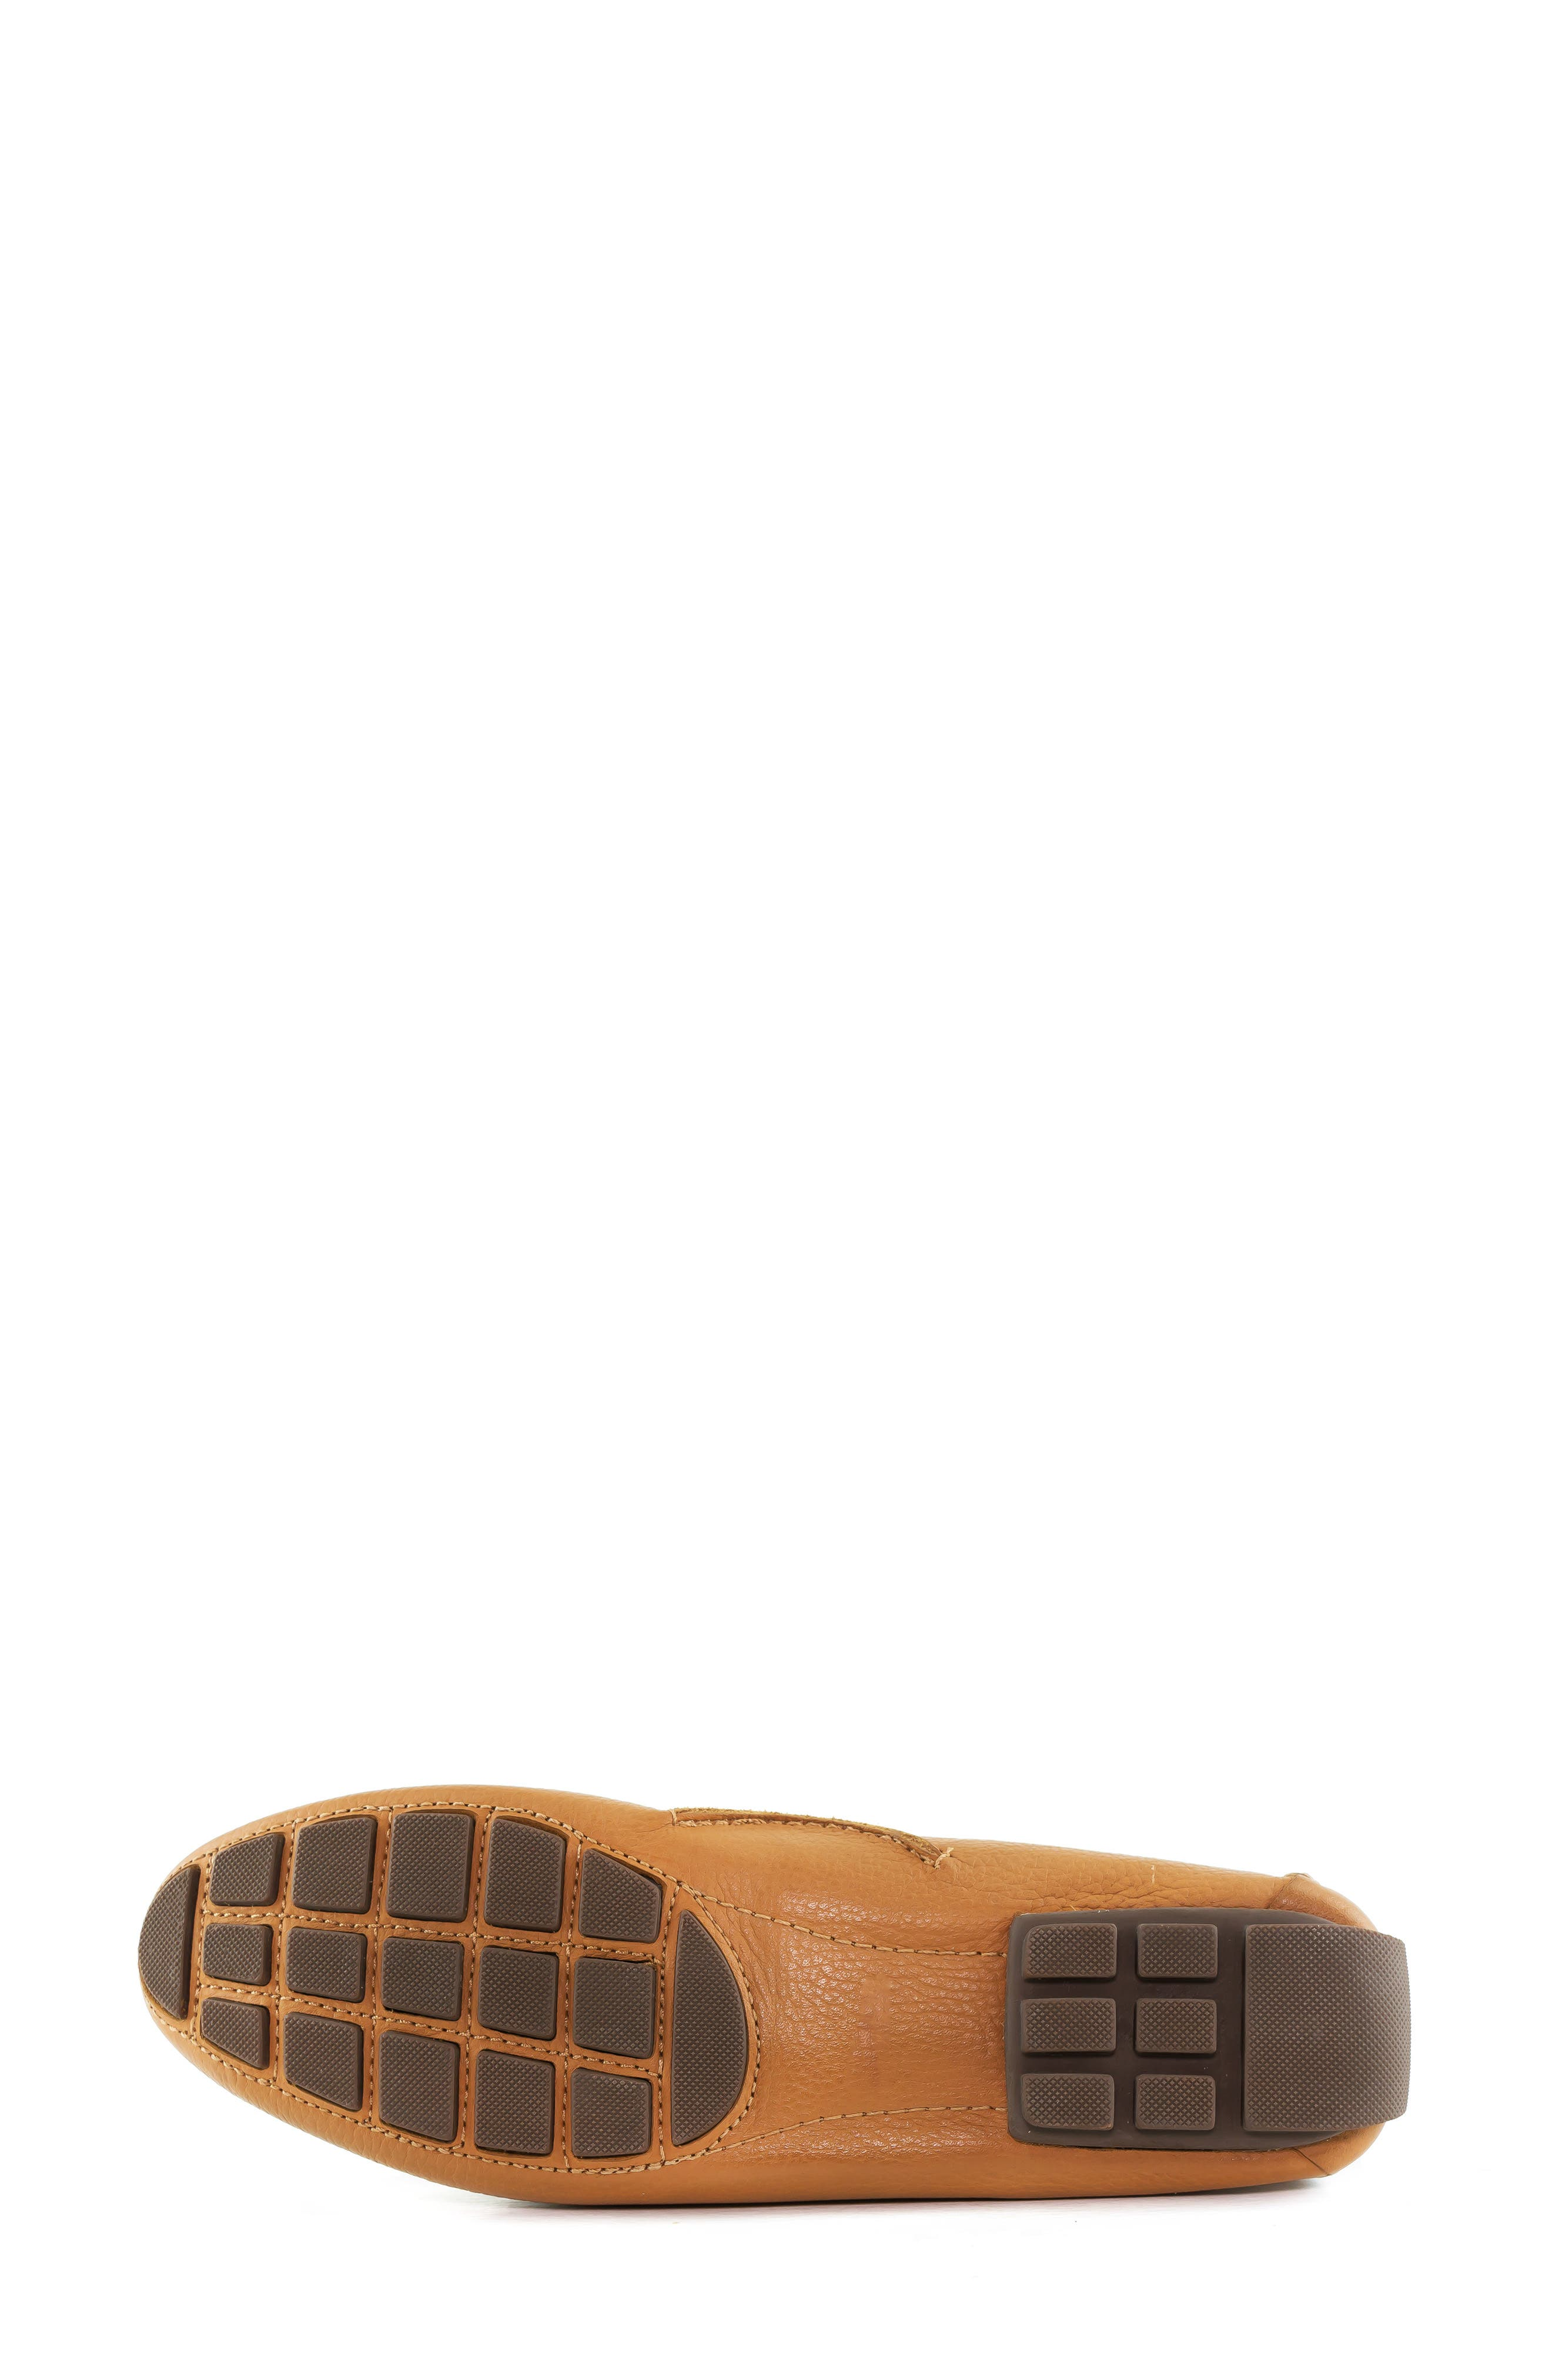 MARC JOSEPH NEW YORK, Manhasset Loafer, Alternate thumbnail 5, color, TAN/ NATURAL LEATHER